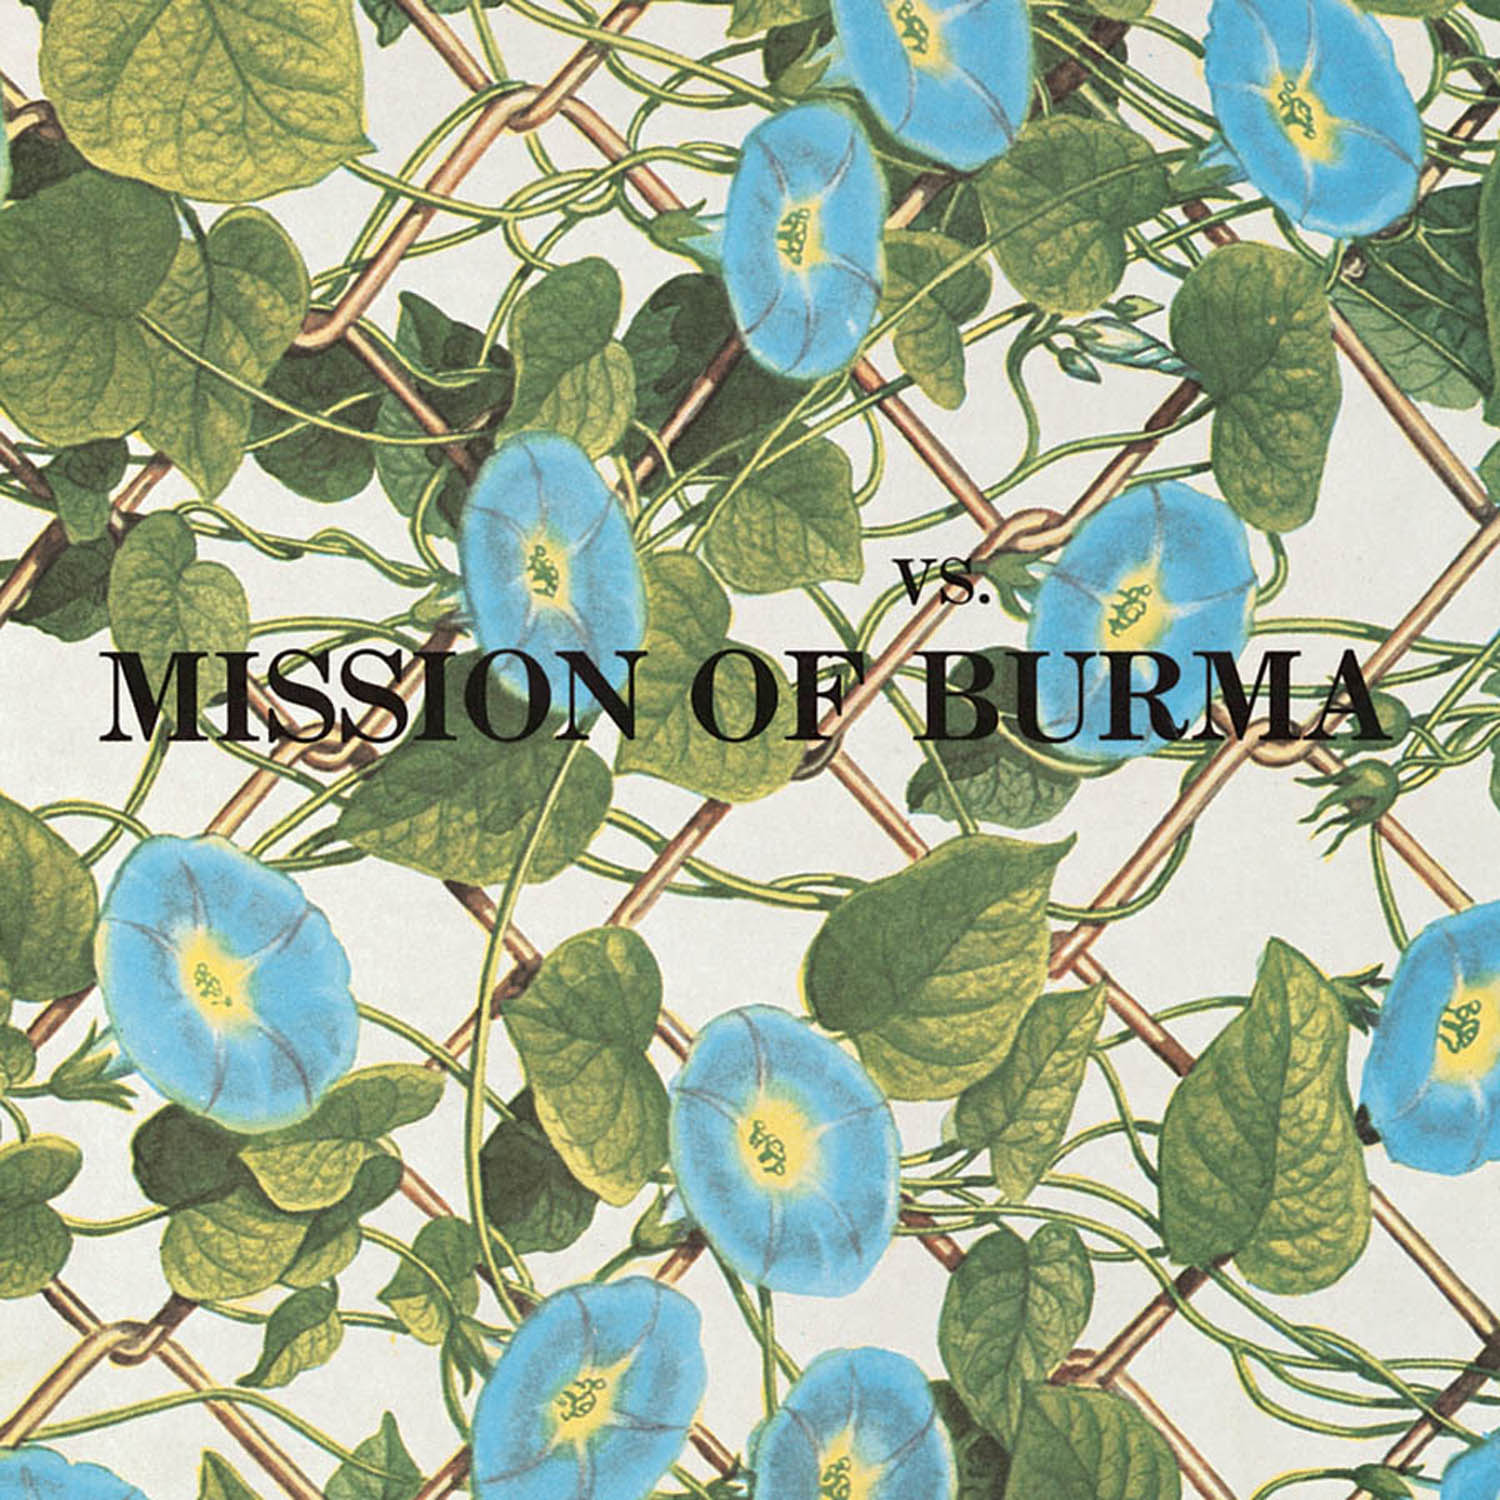 Mission of Burma Vs review